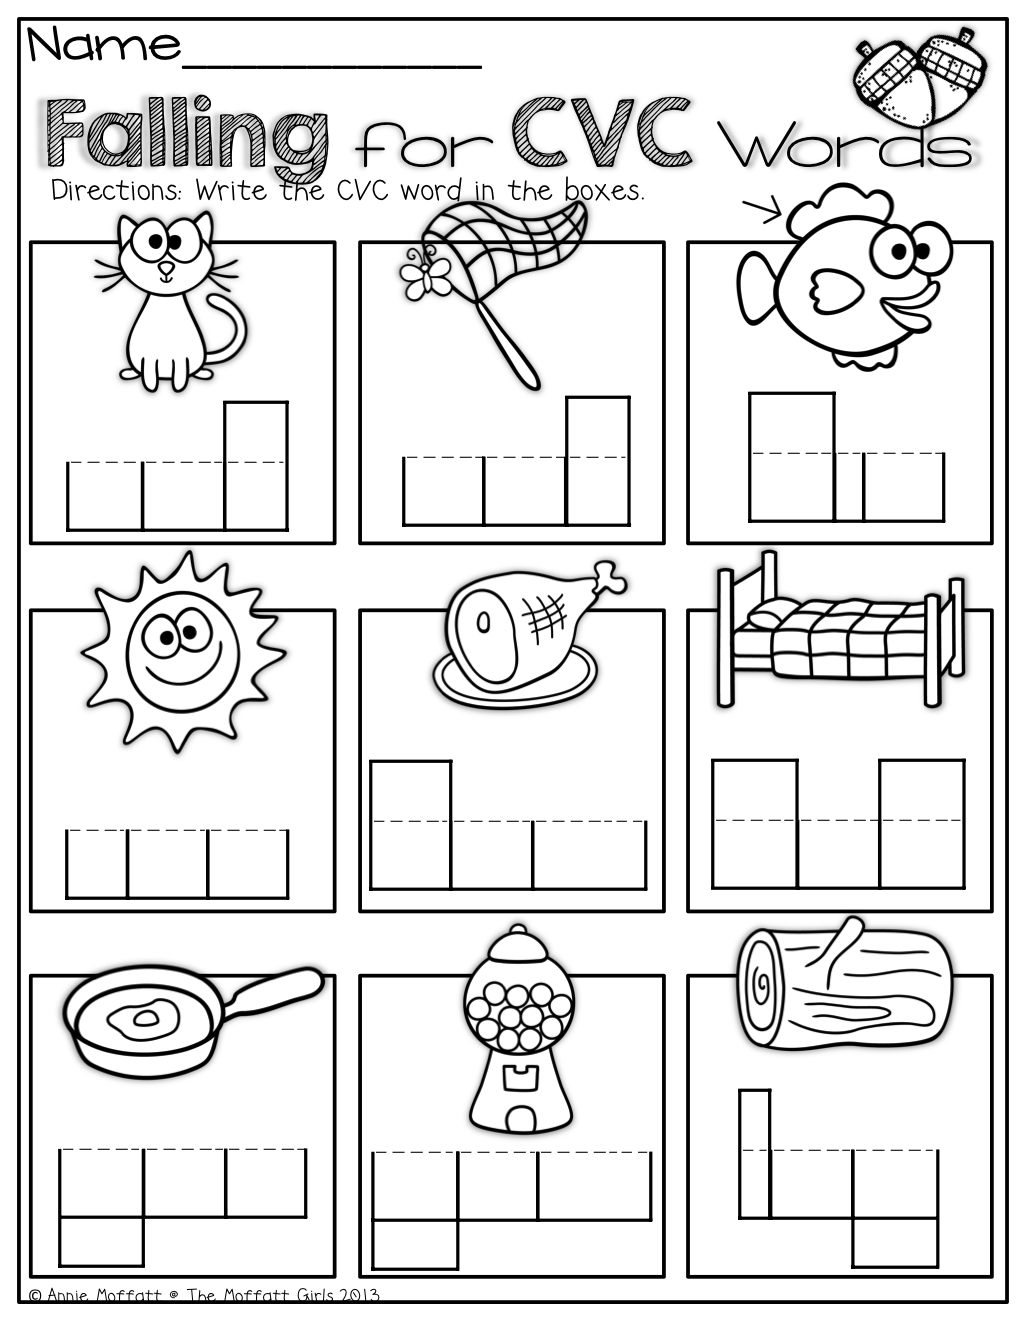 35++ Writing cvc words worksheets Top